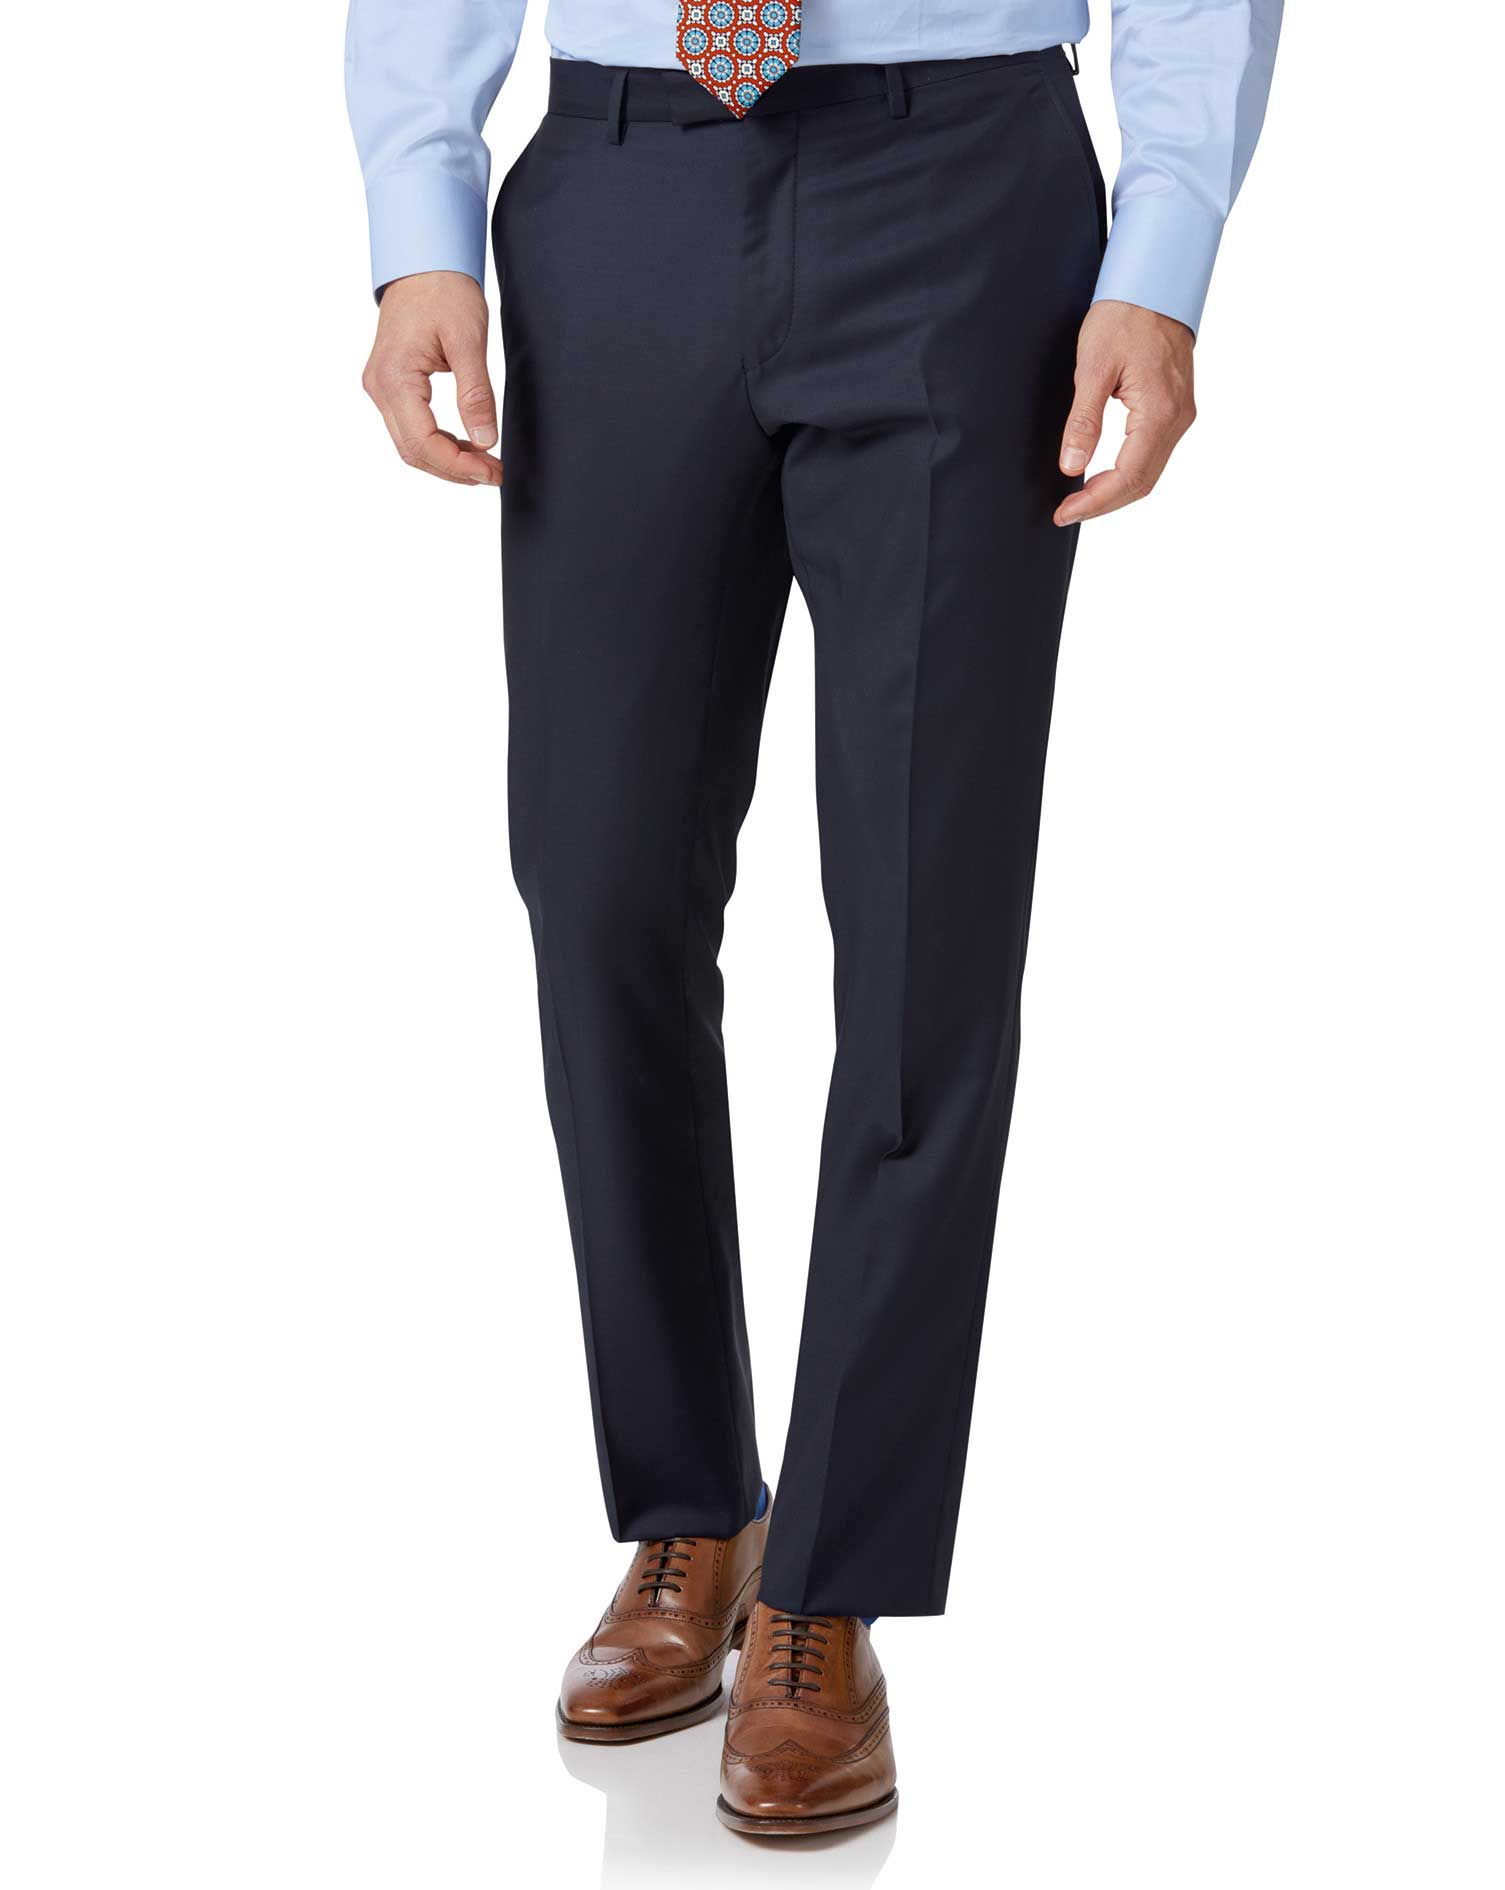 Navy Slim Fit Italian Twill Luxury Suit Trousers Size W40 L32 by Charles Tyrwhitt